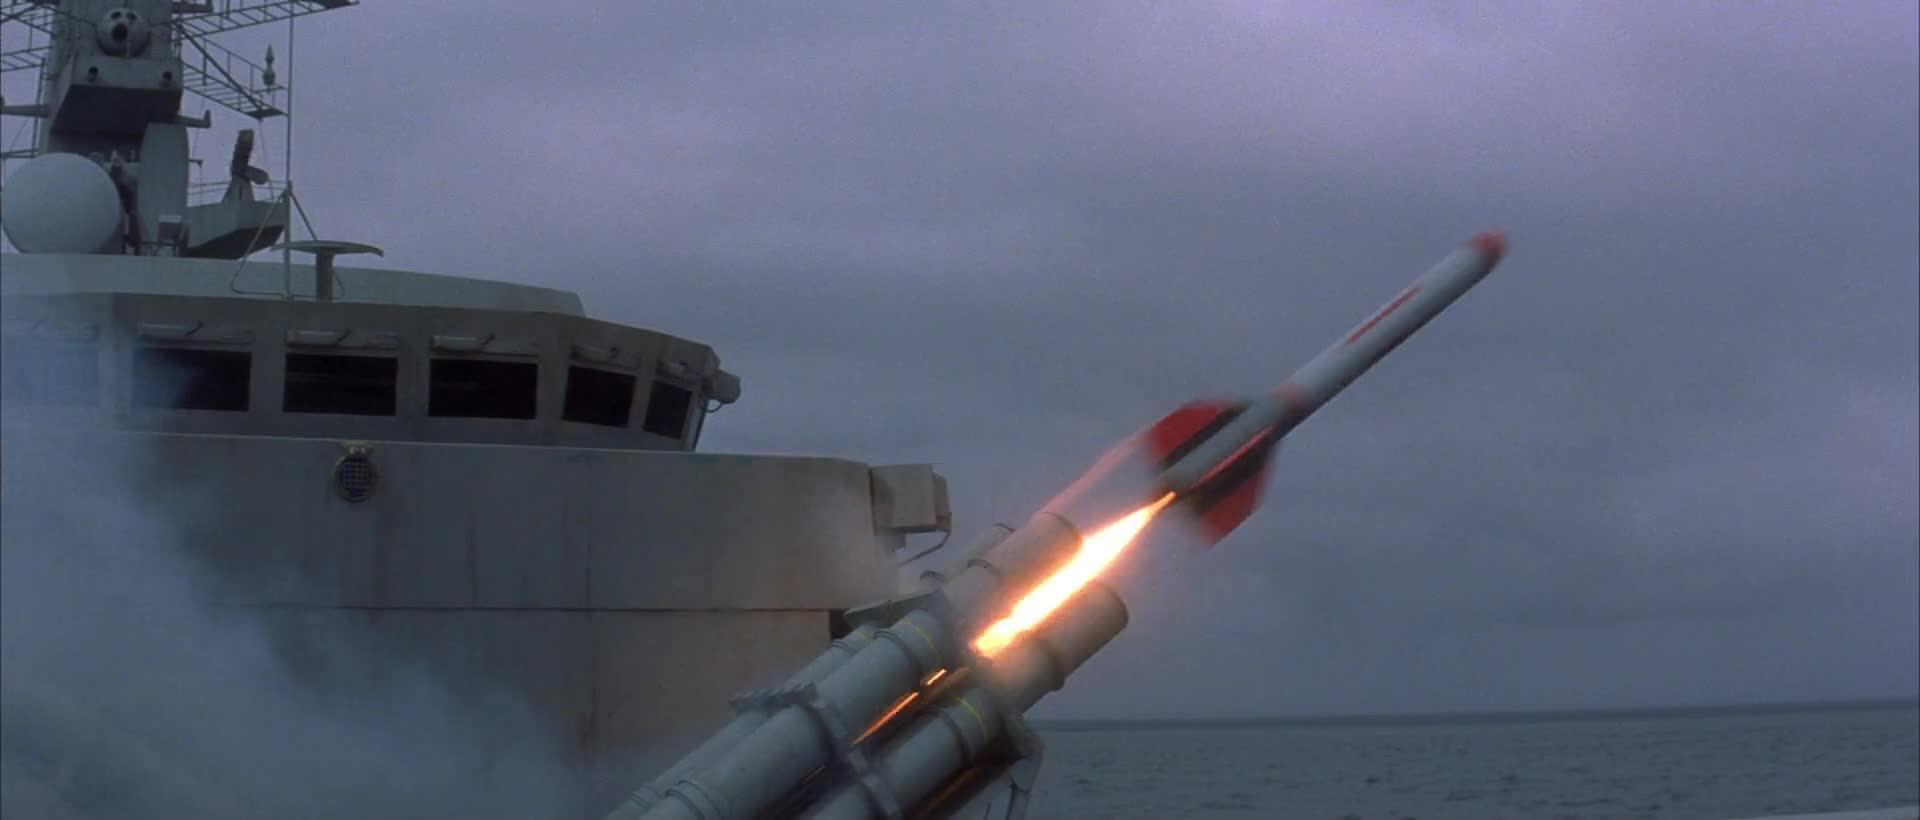 Phallic rockets firing in James Bond Tomorrow Never Dies